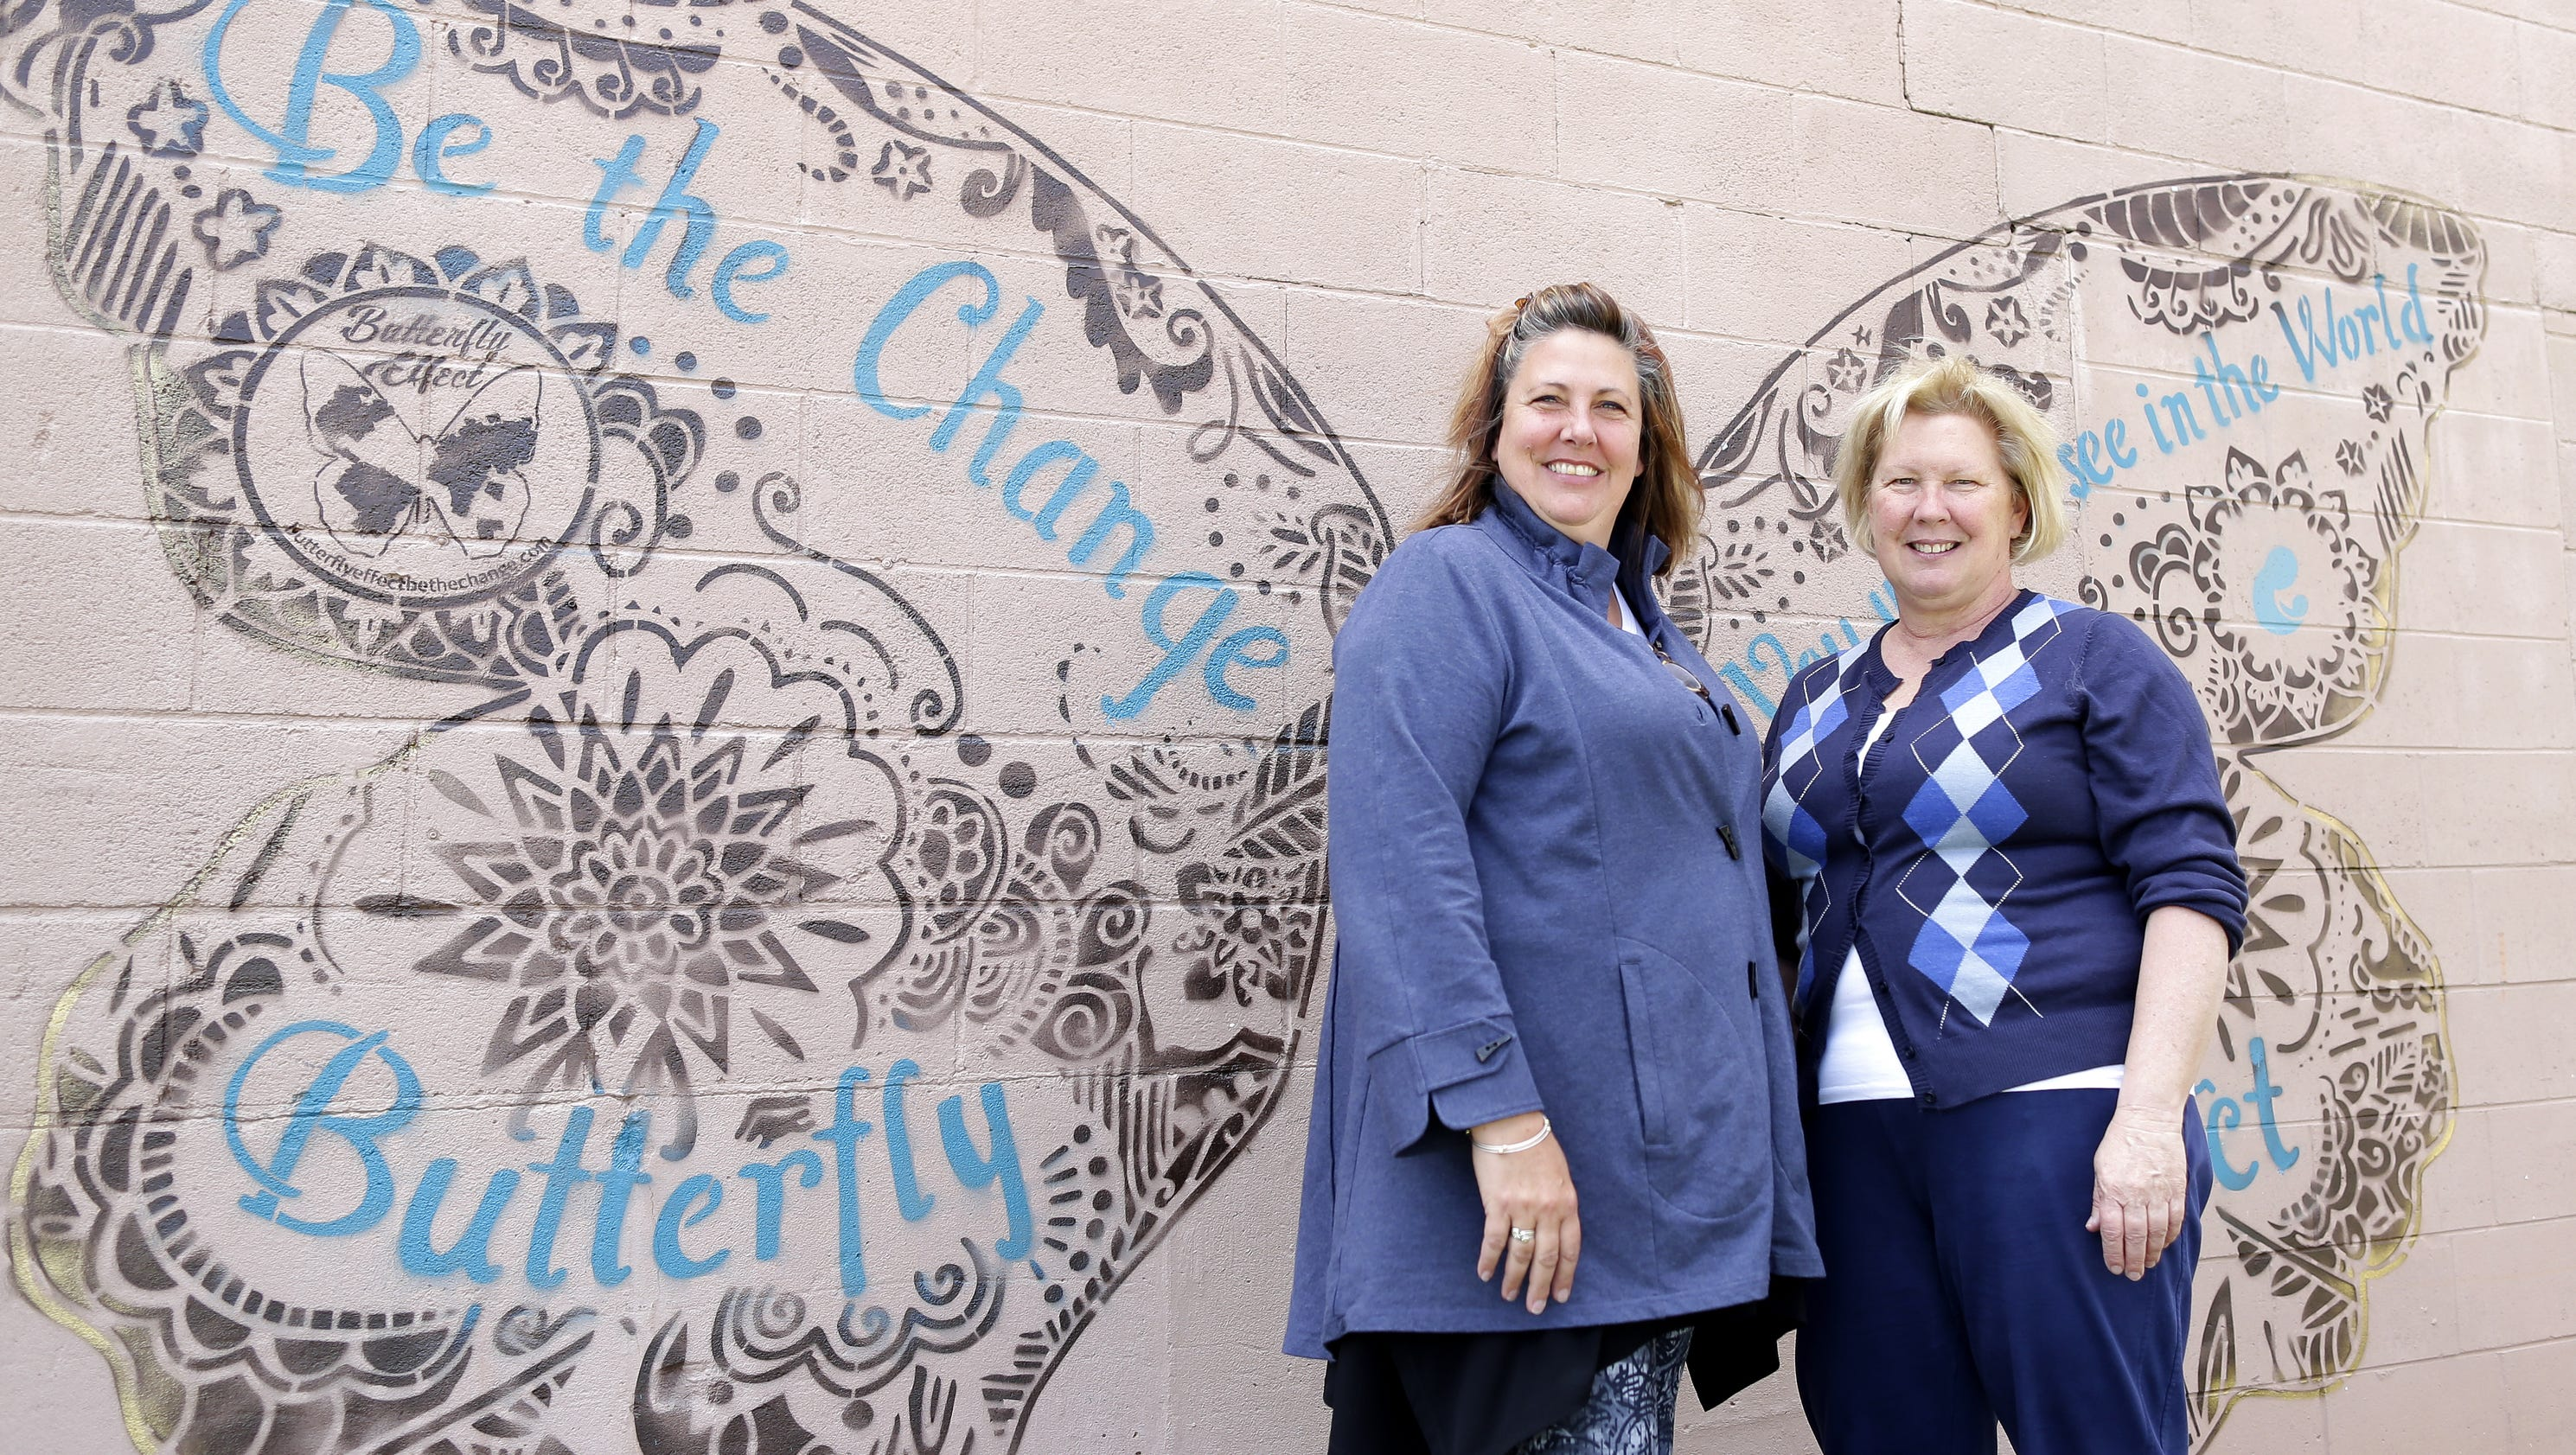 Green bay butterfly mural to help breastfeeding coalition for Butterfly mural